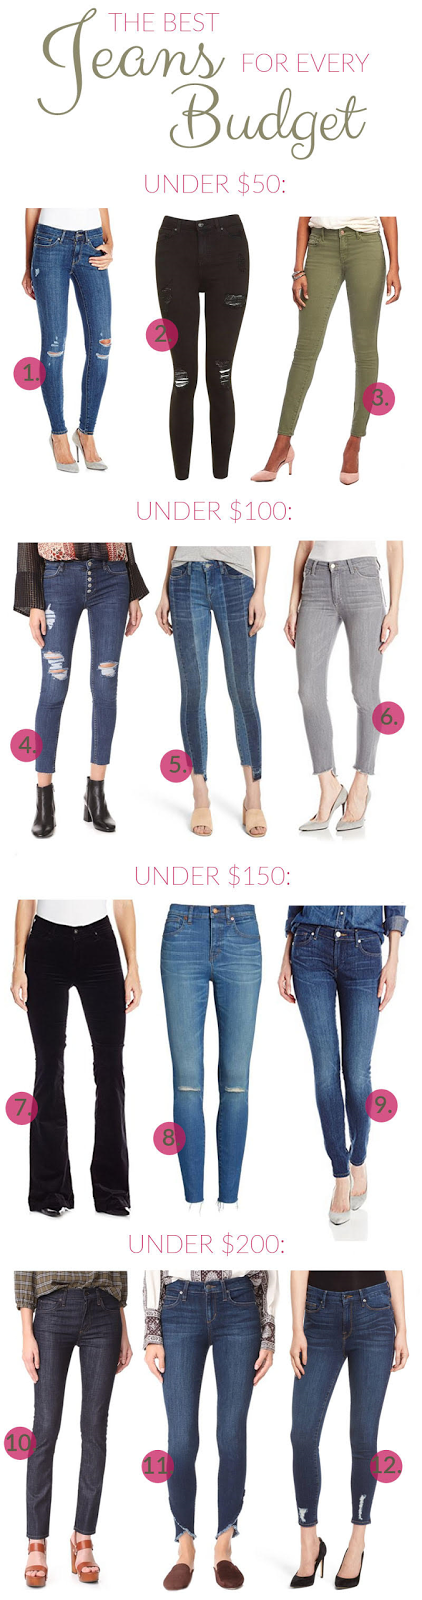 The Best Jeans for Every Budget Starting at under $50 by fashion blogger Walking in Memphis in High Heels